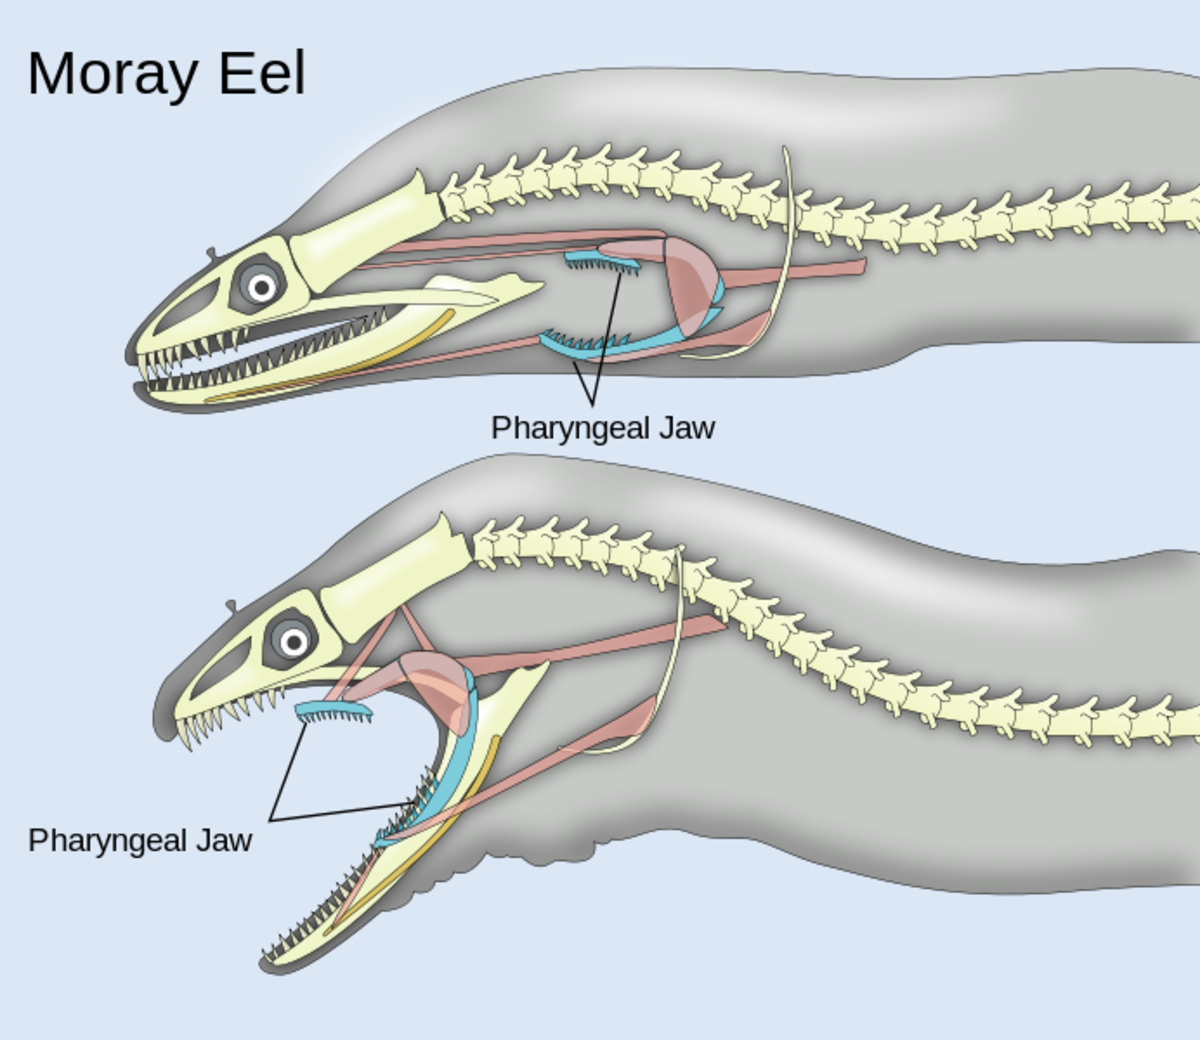 Action of the pharyngeal jaws